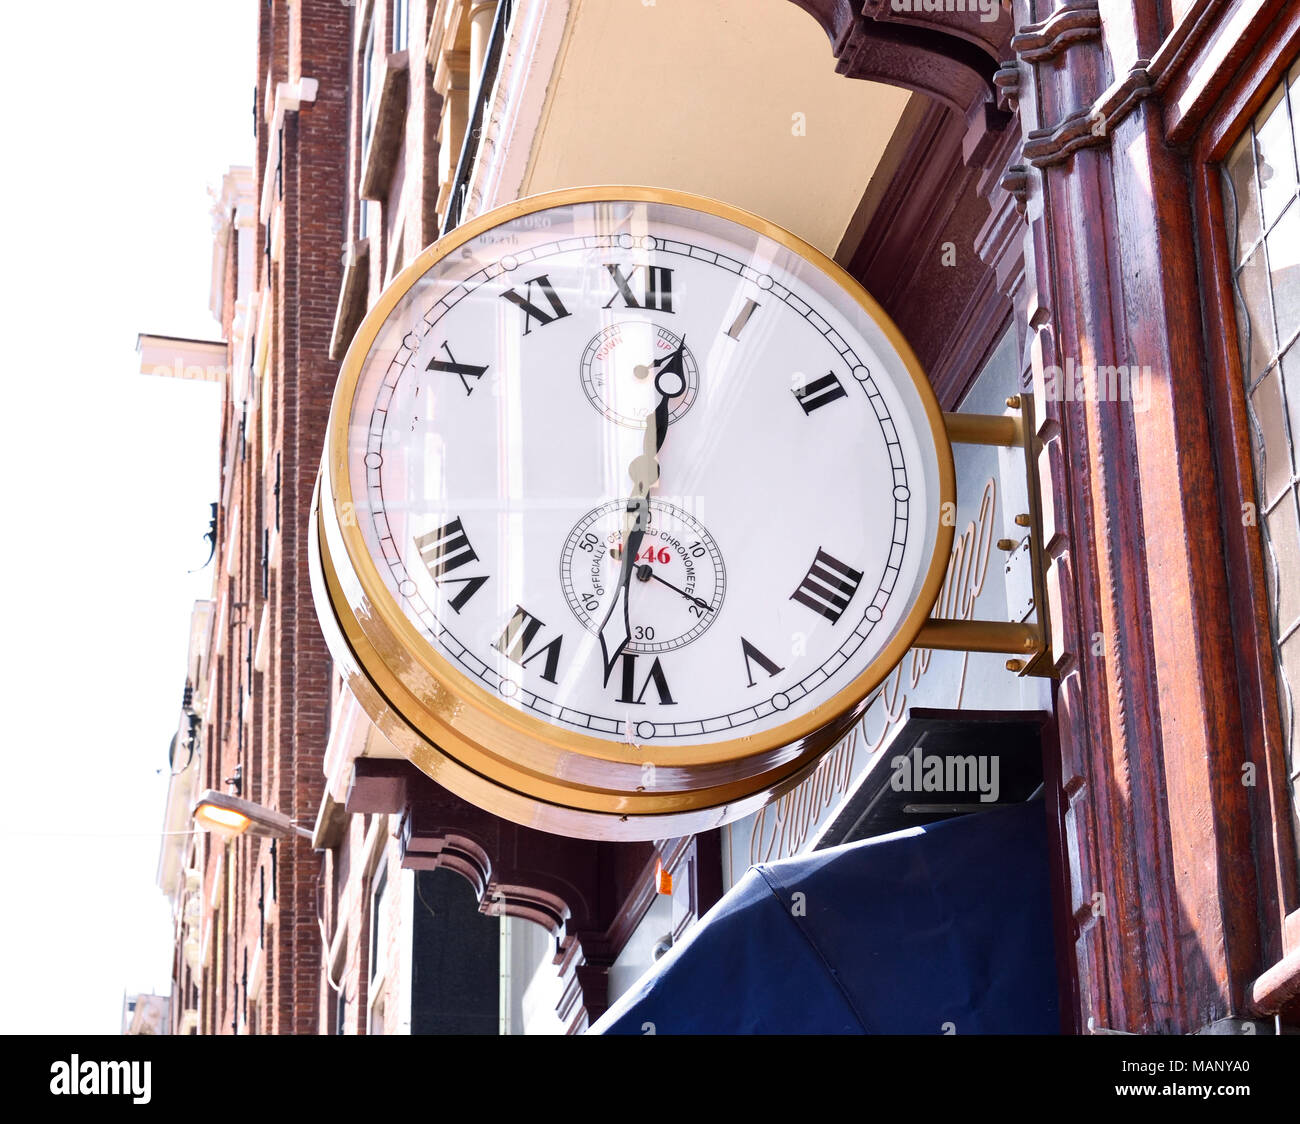 Old or antique clock on a house facade or building exterior. Beautiful golden clock. - Stock Image